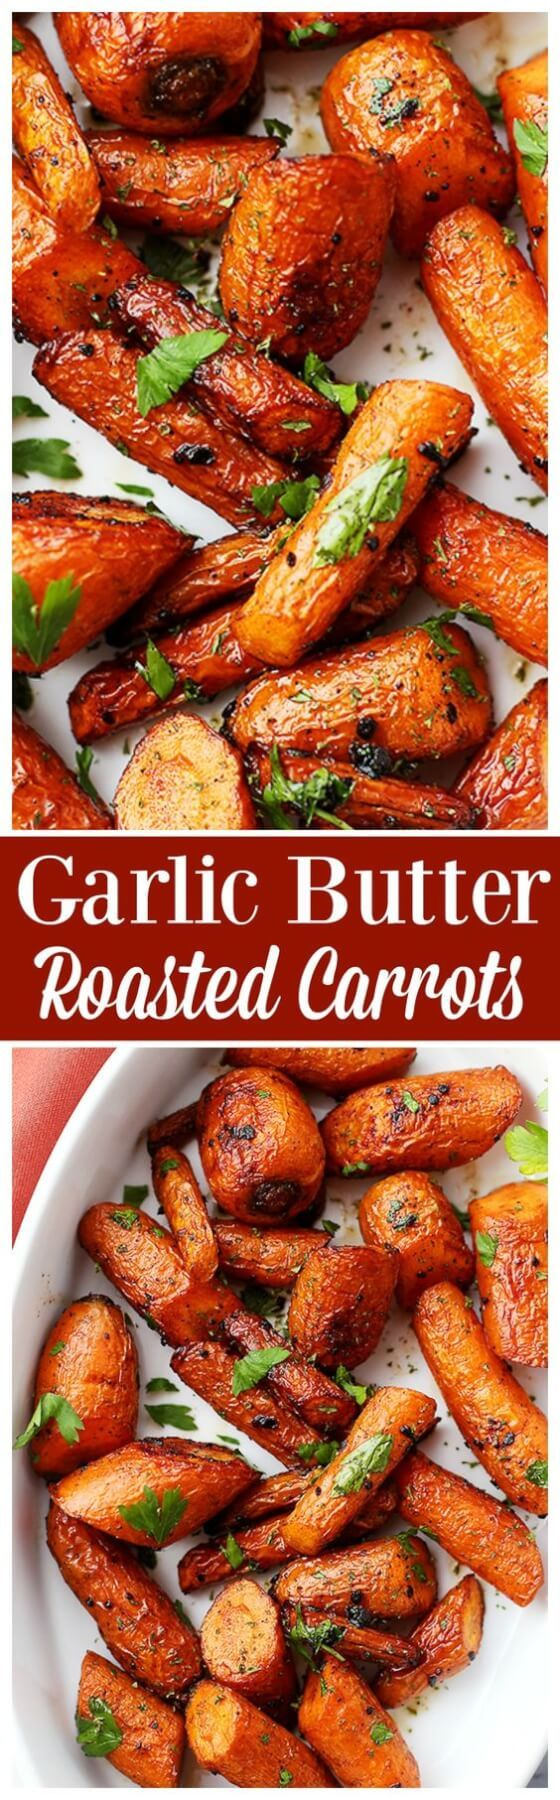 Garlic Butter Roasted Carrots Recipe plus 24 more of the most pinned Easter recipes